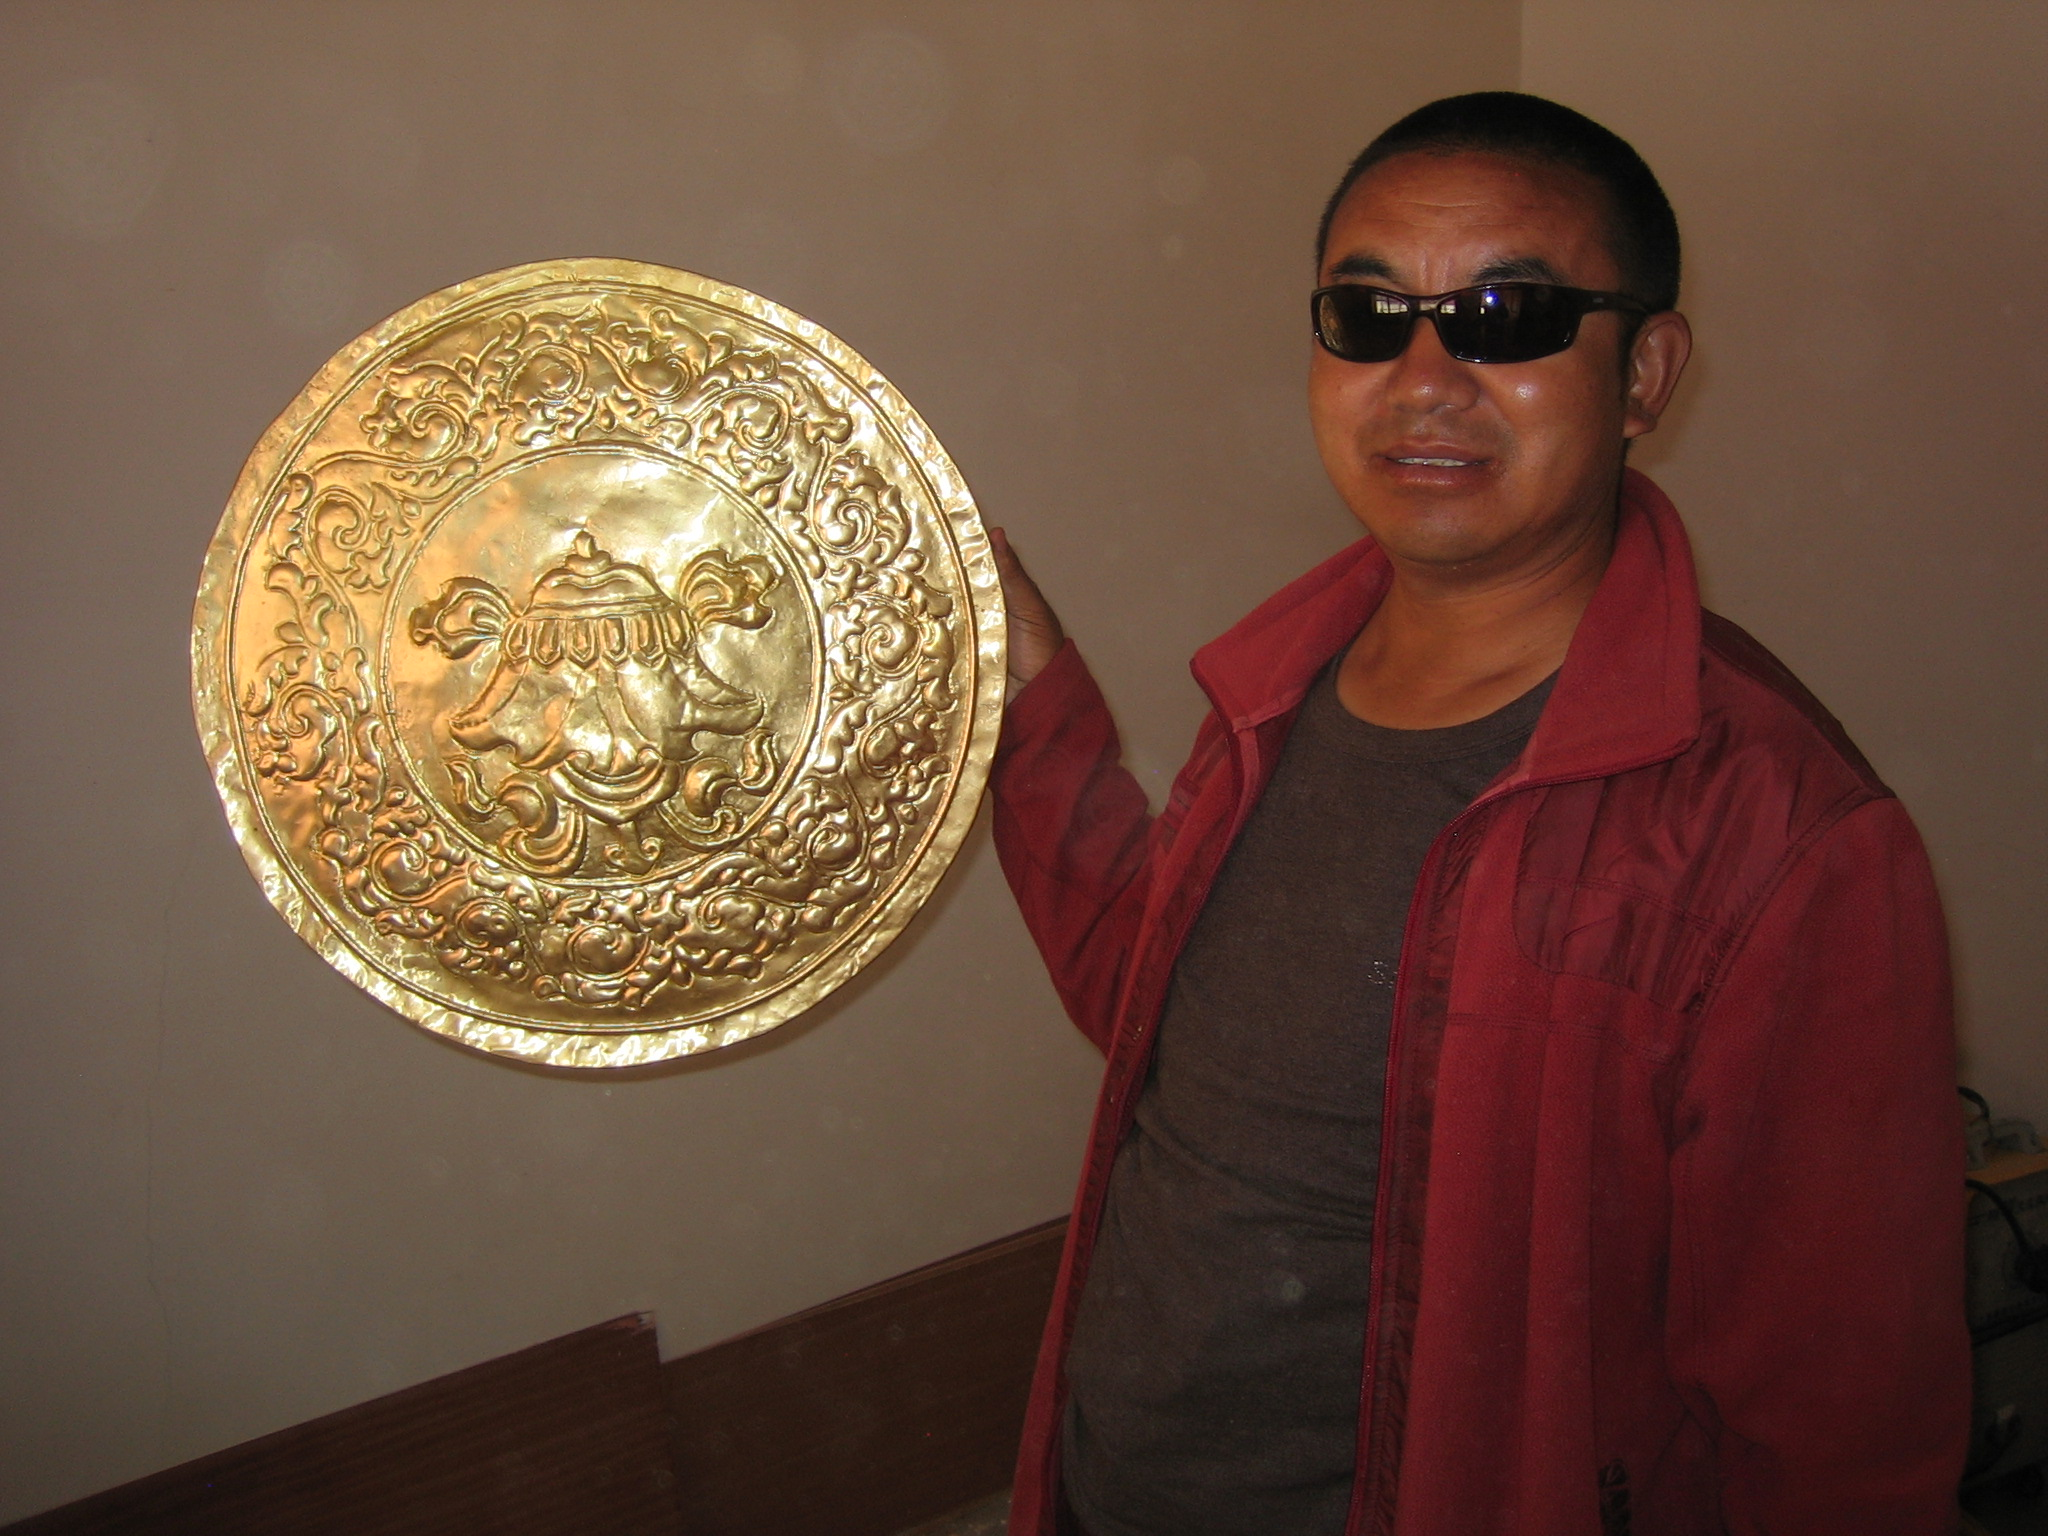 Surmang Khenpo holds up one of the golden medallions.